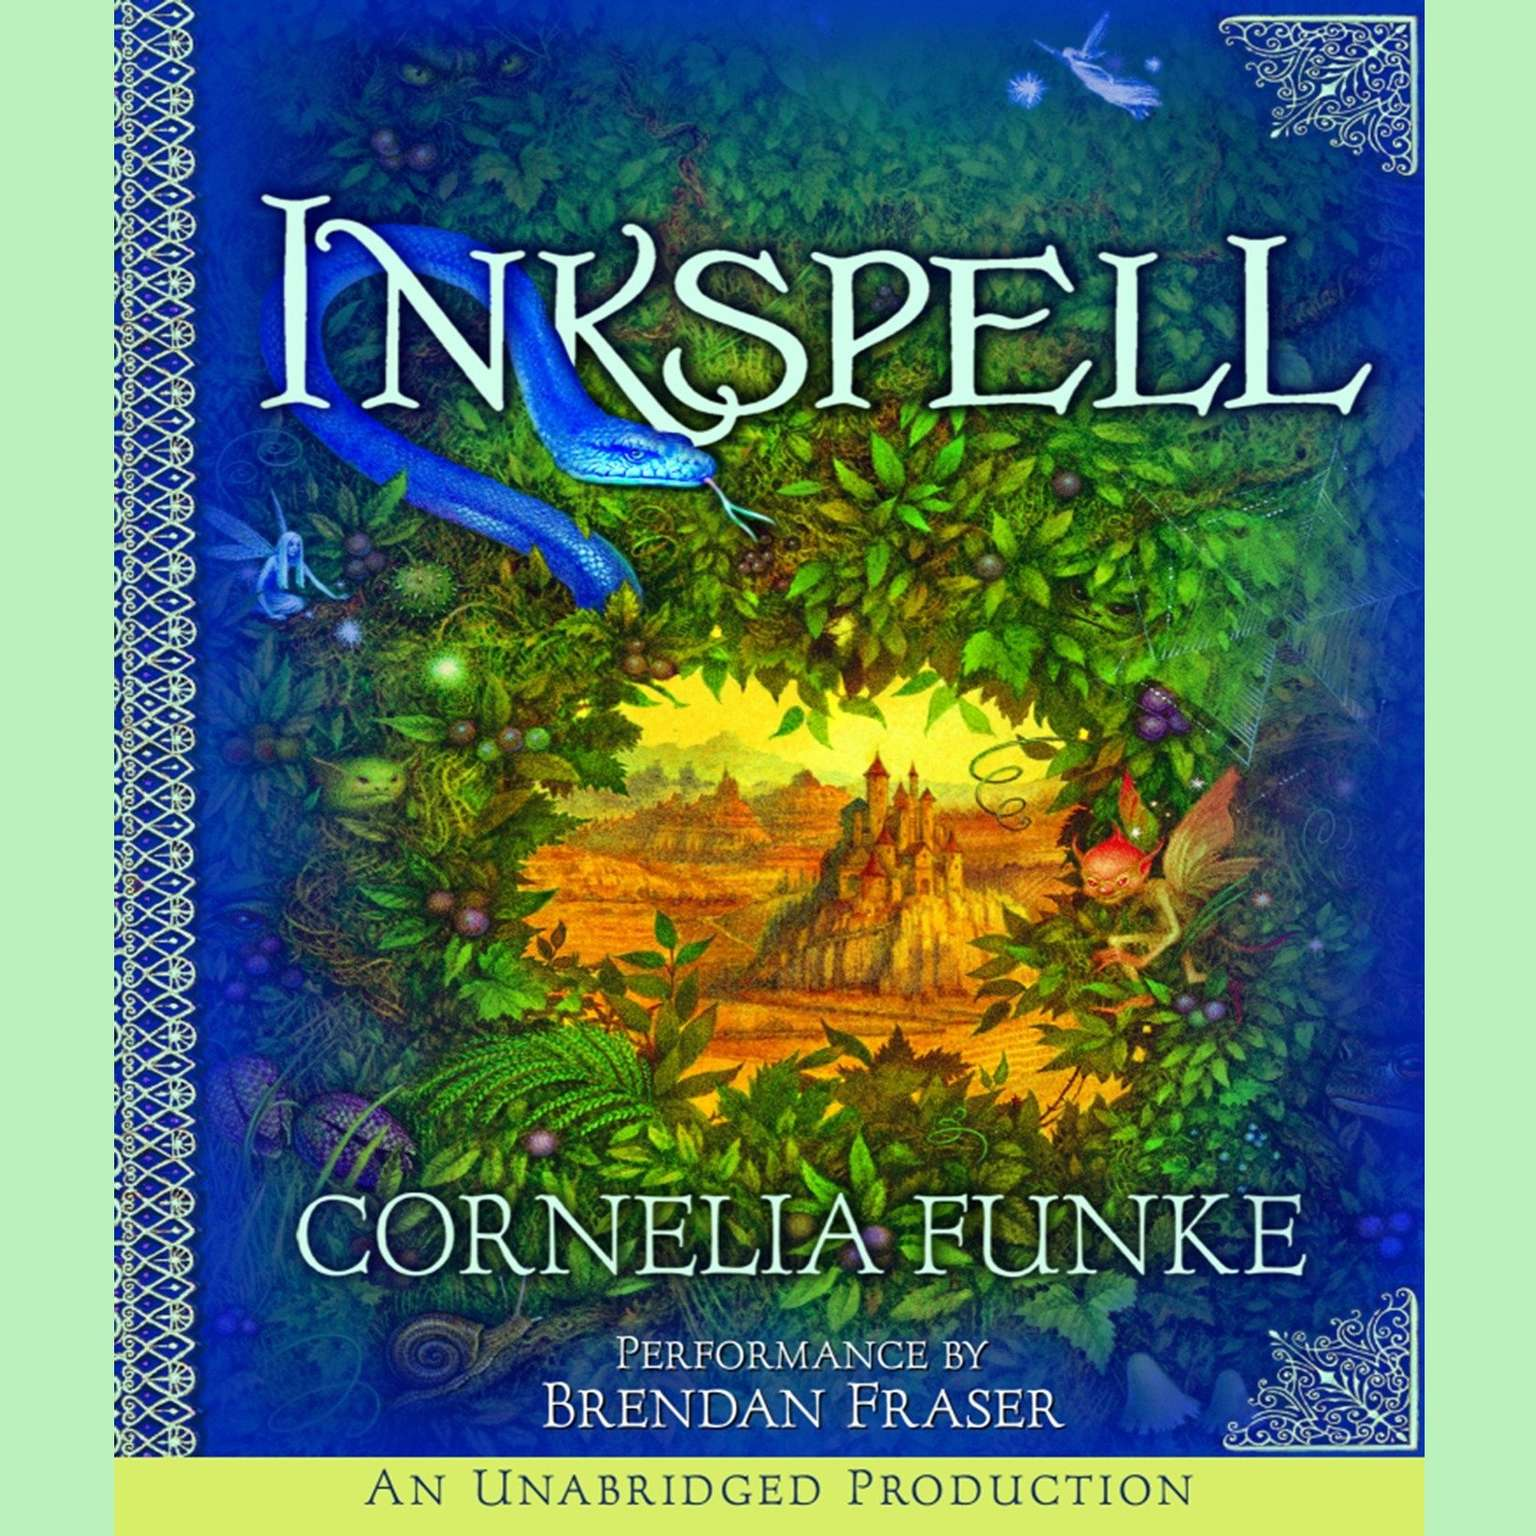 Printable Inkspell Audiobook Cover Art